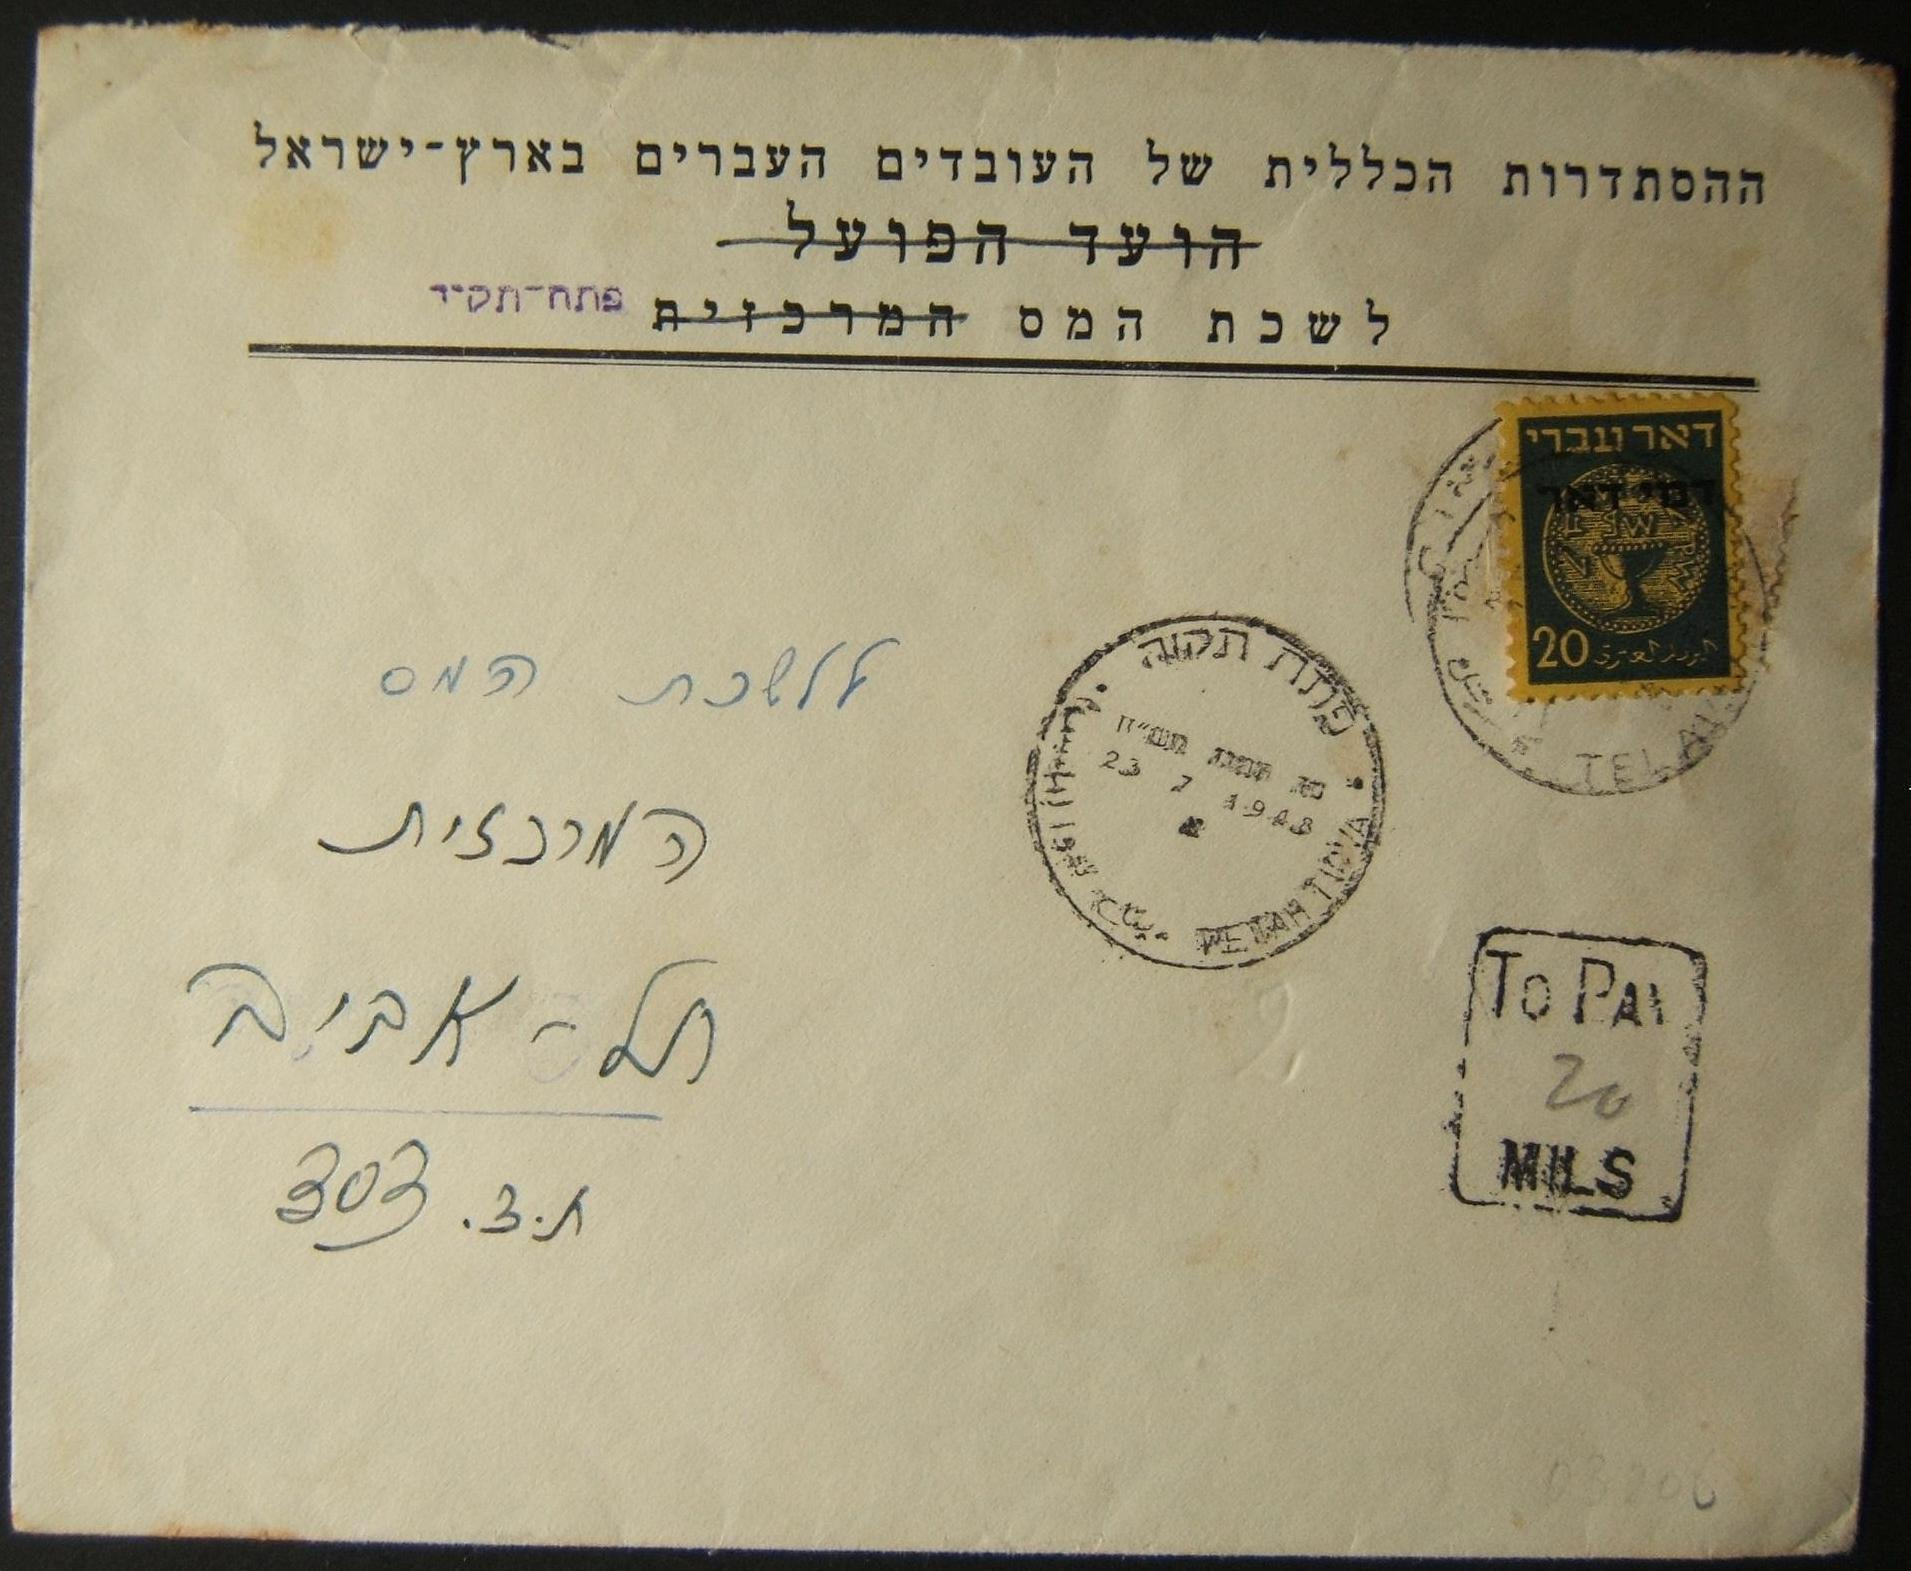 23-7-1948 Petach Tikva to Tel Aviv stampless mailed taxed using 20m postage Dues frank